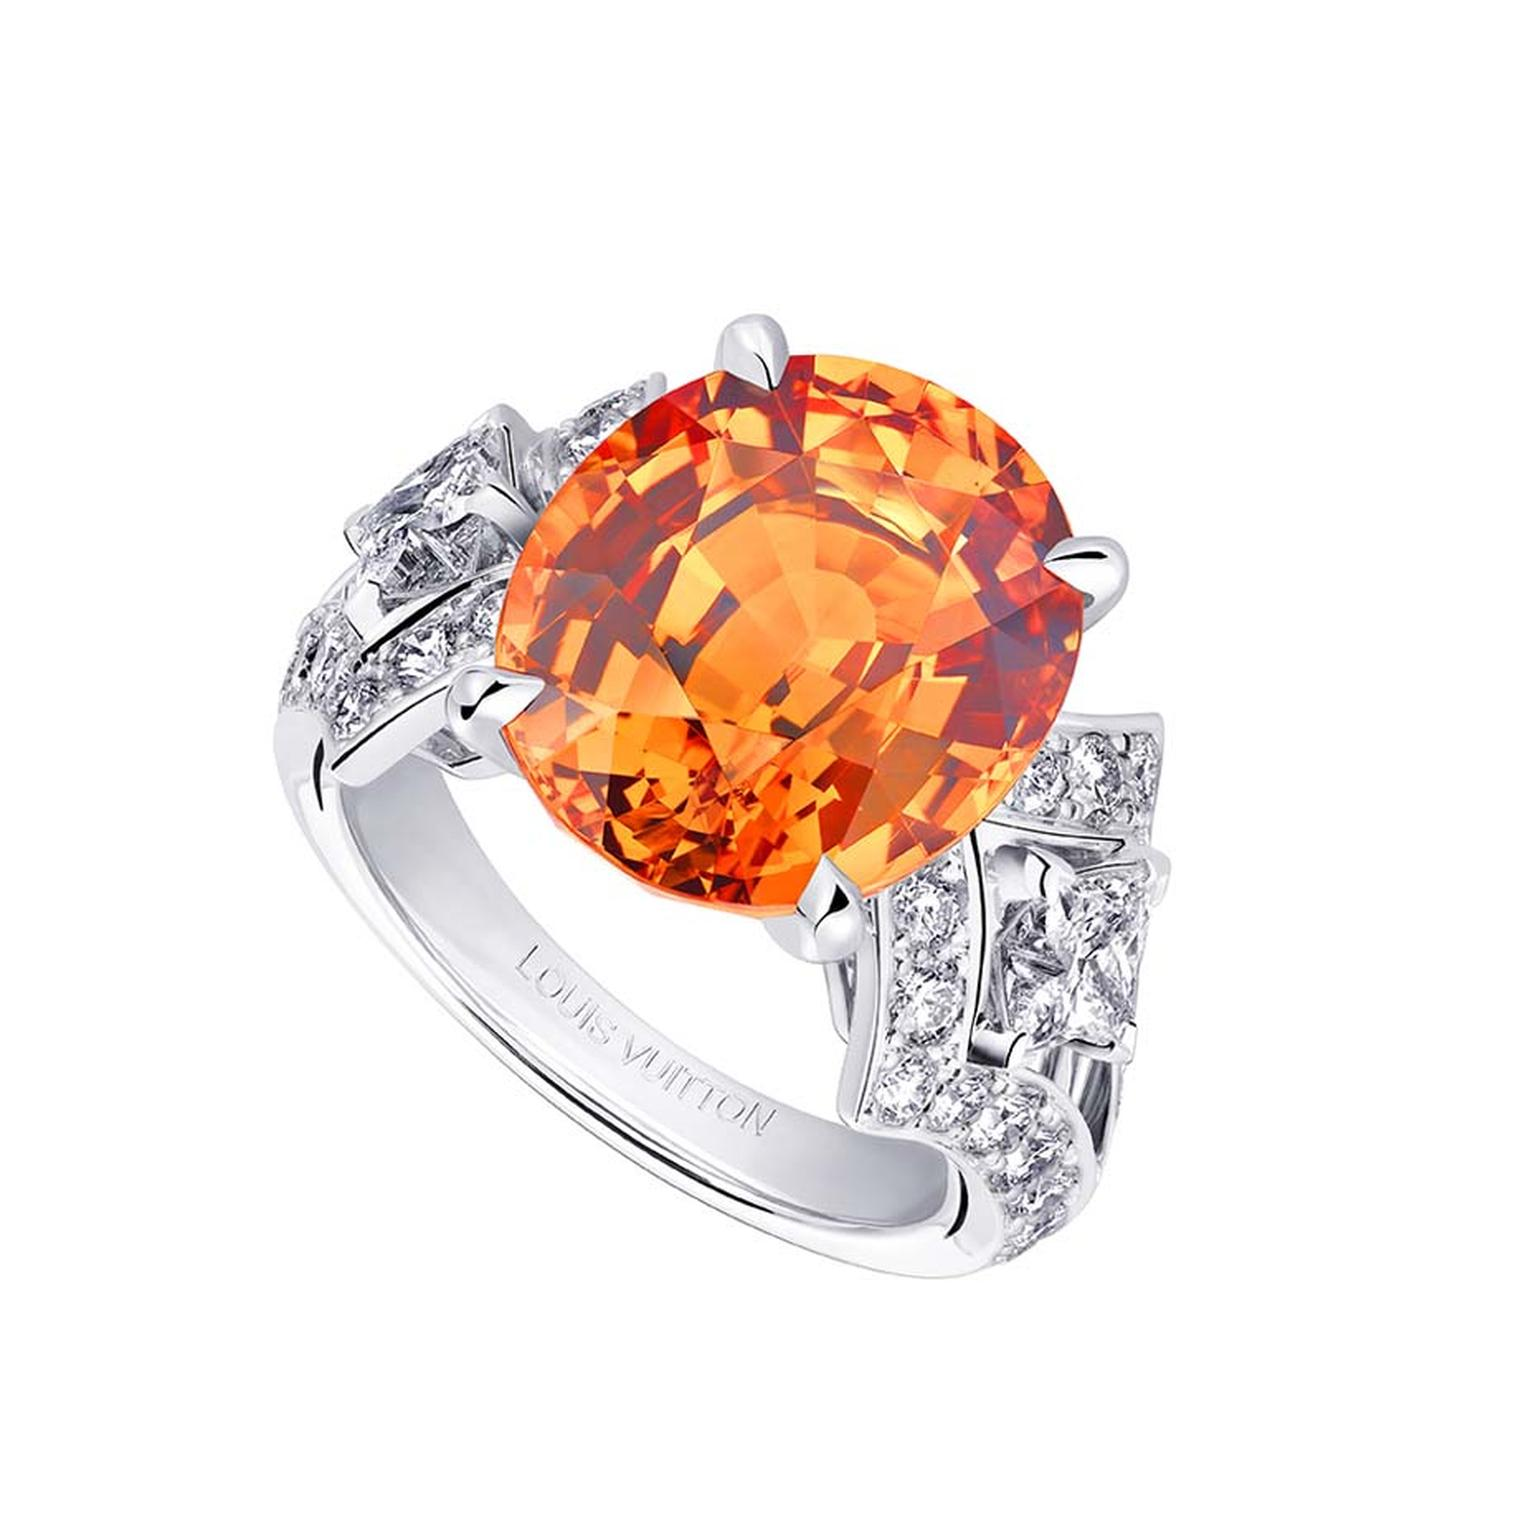 Louis Vuitton ring from the Acte V high jewellery collection, set with a central mandarin garnet surrounded by diamonds.